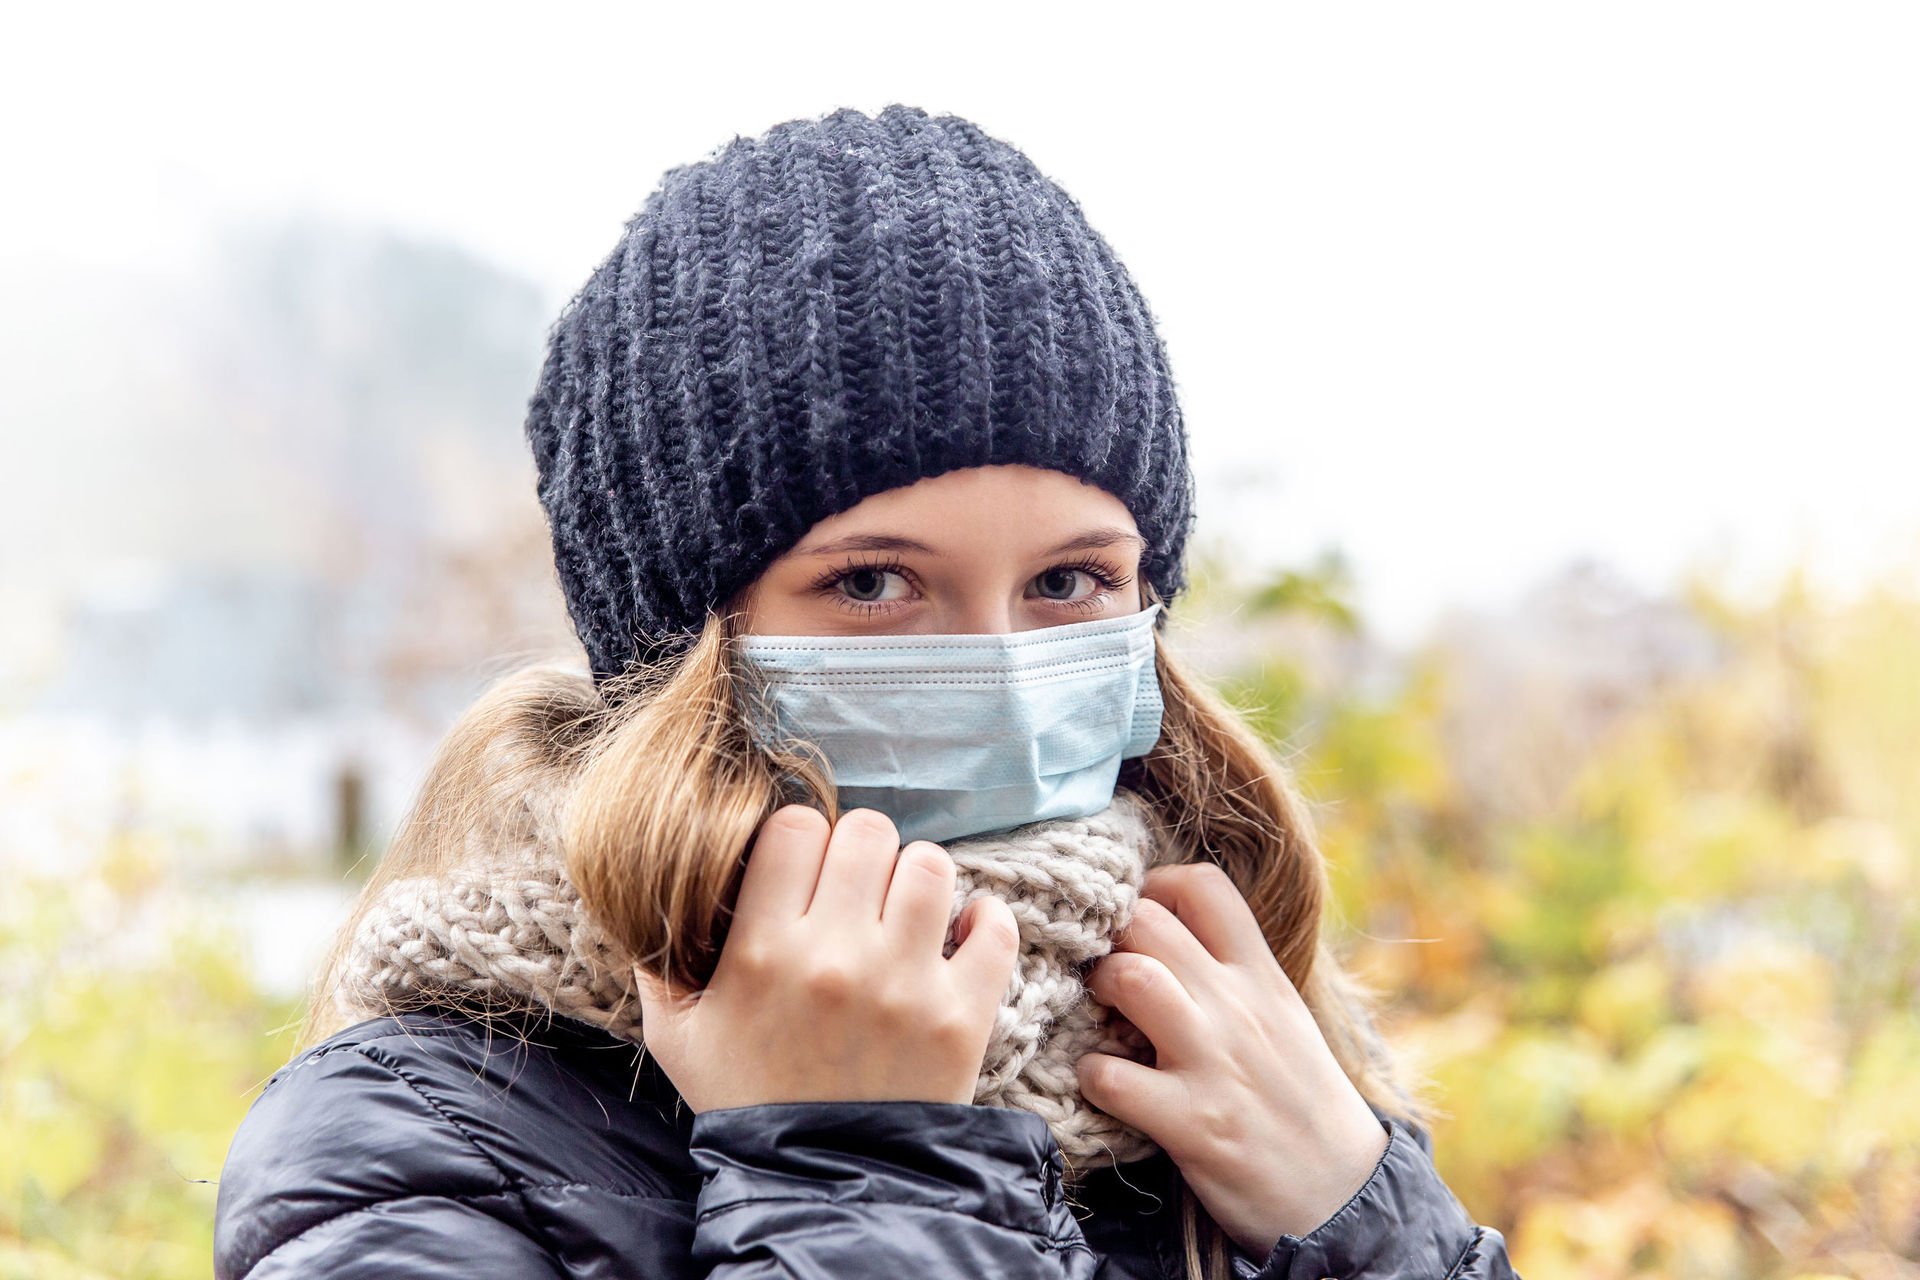 Coronavirus panic: Face masks sell out, but do they work?